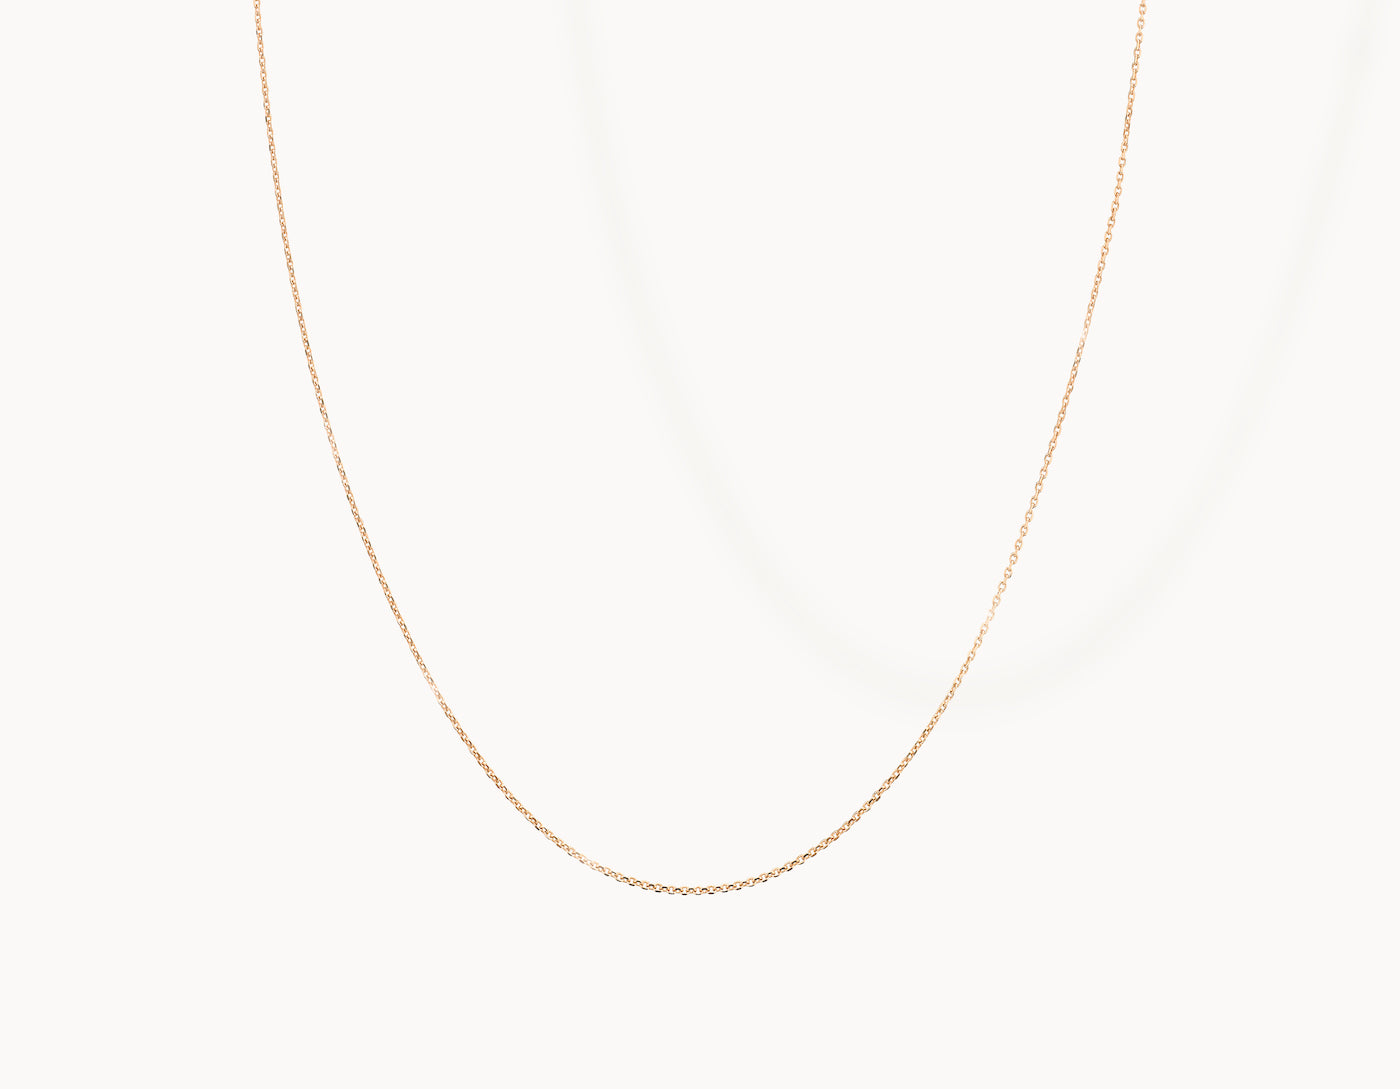 Delicate simple diamond cut Shimmer Chain Necklace by Vrai, 14K Rose Gold